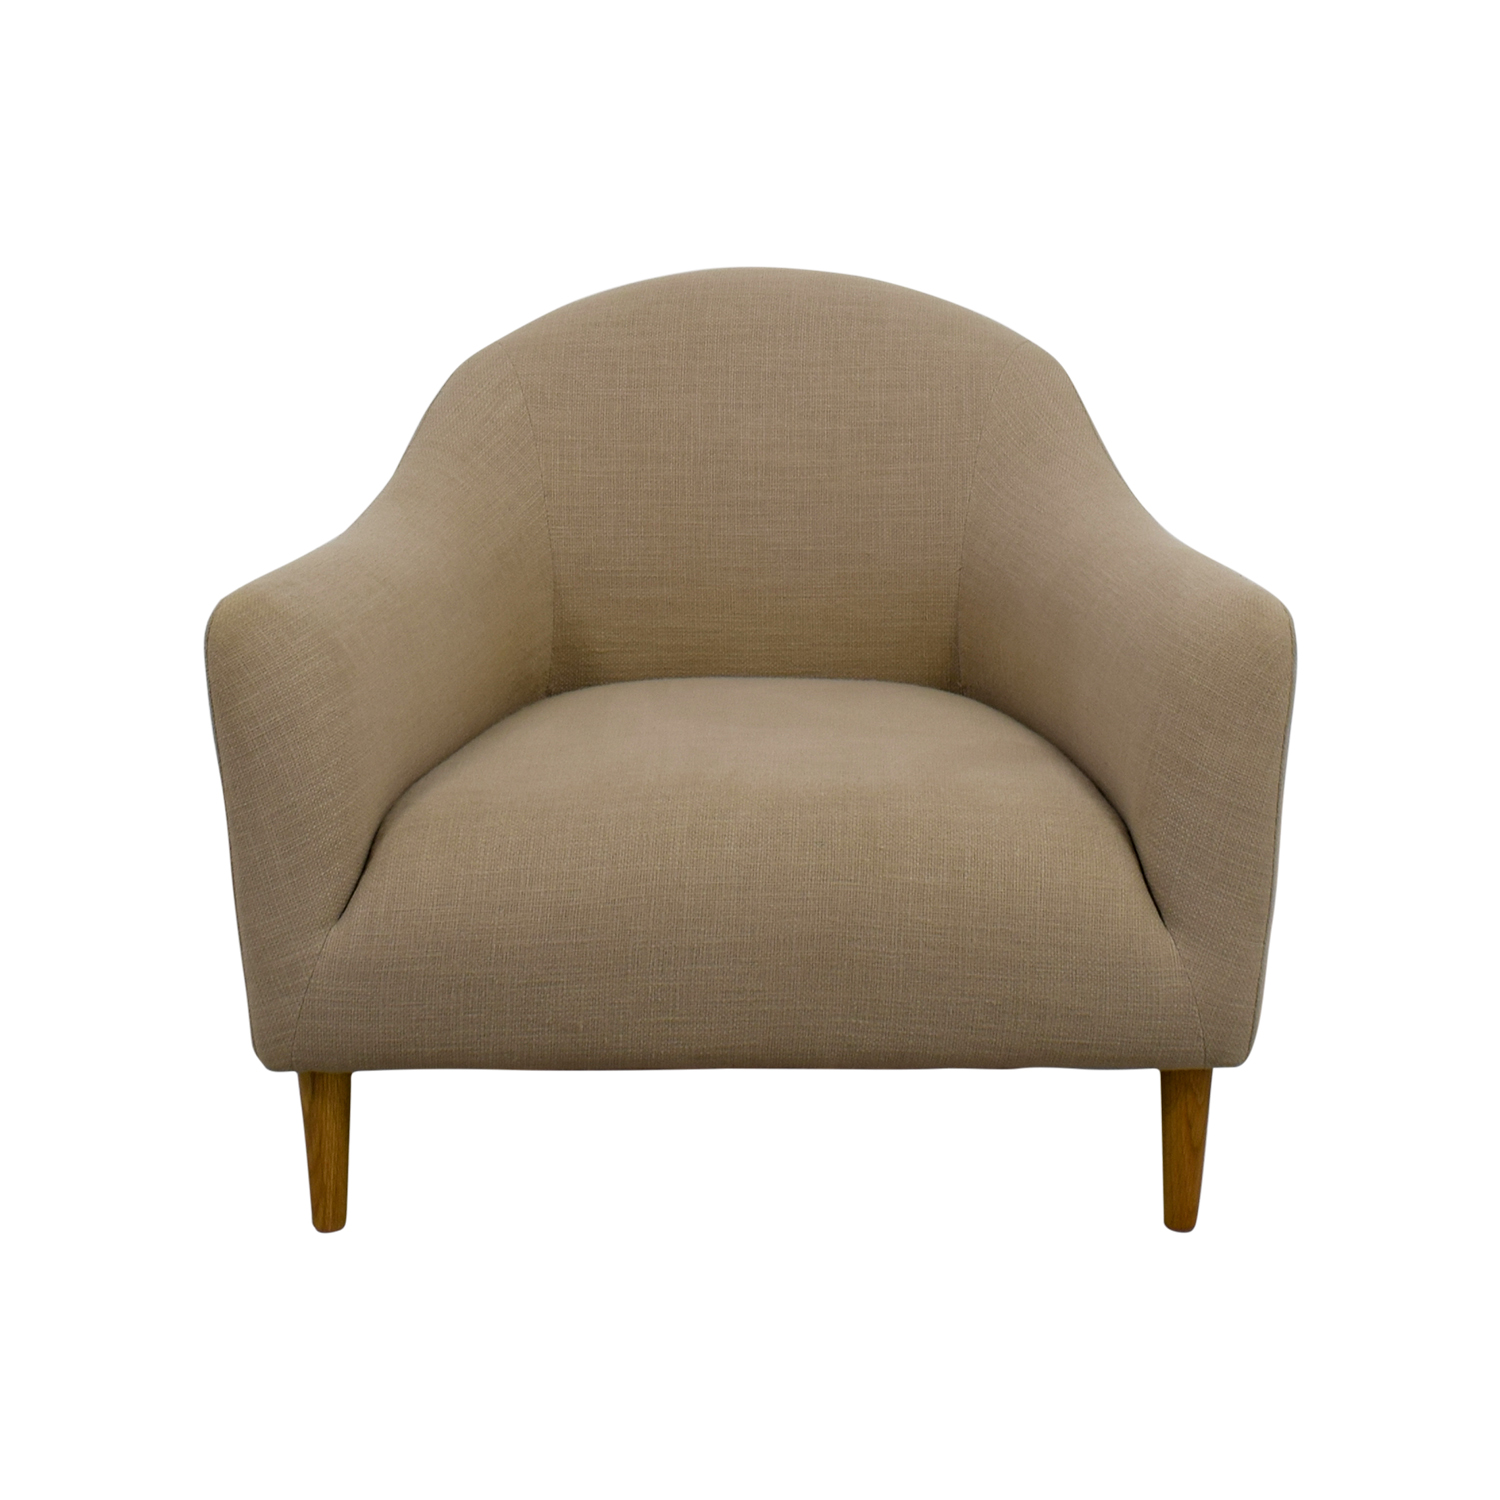 Crate and Barrel Pennie Beige Accent Chair / Sofas